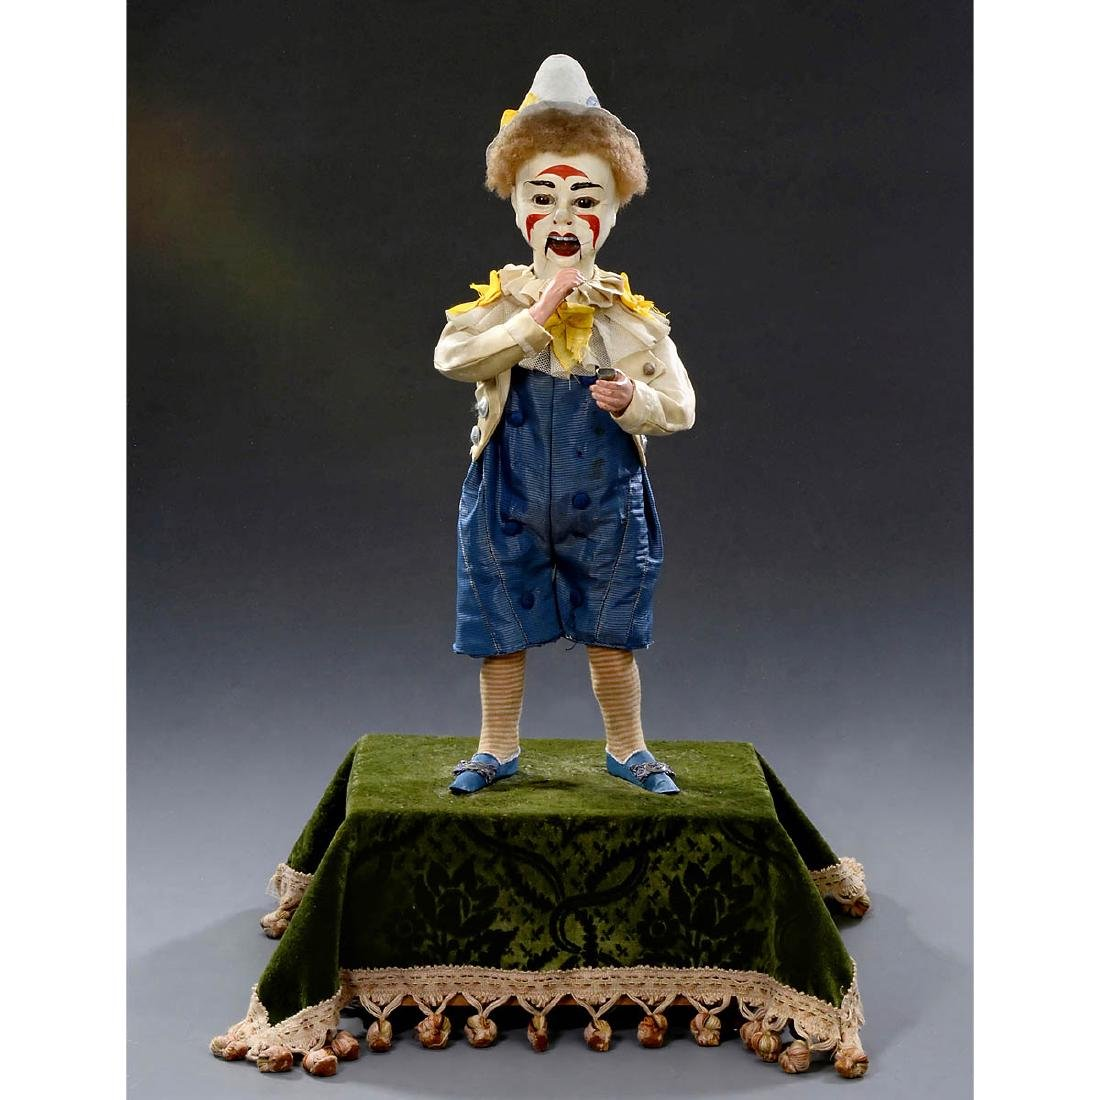 Musical Automaton Clown Taking Snuff by Adolph Müller, - 5